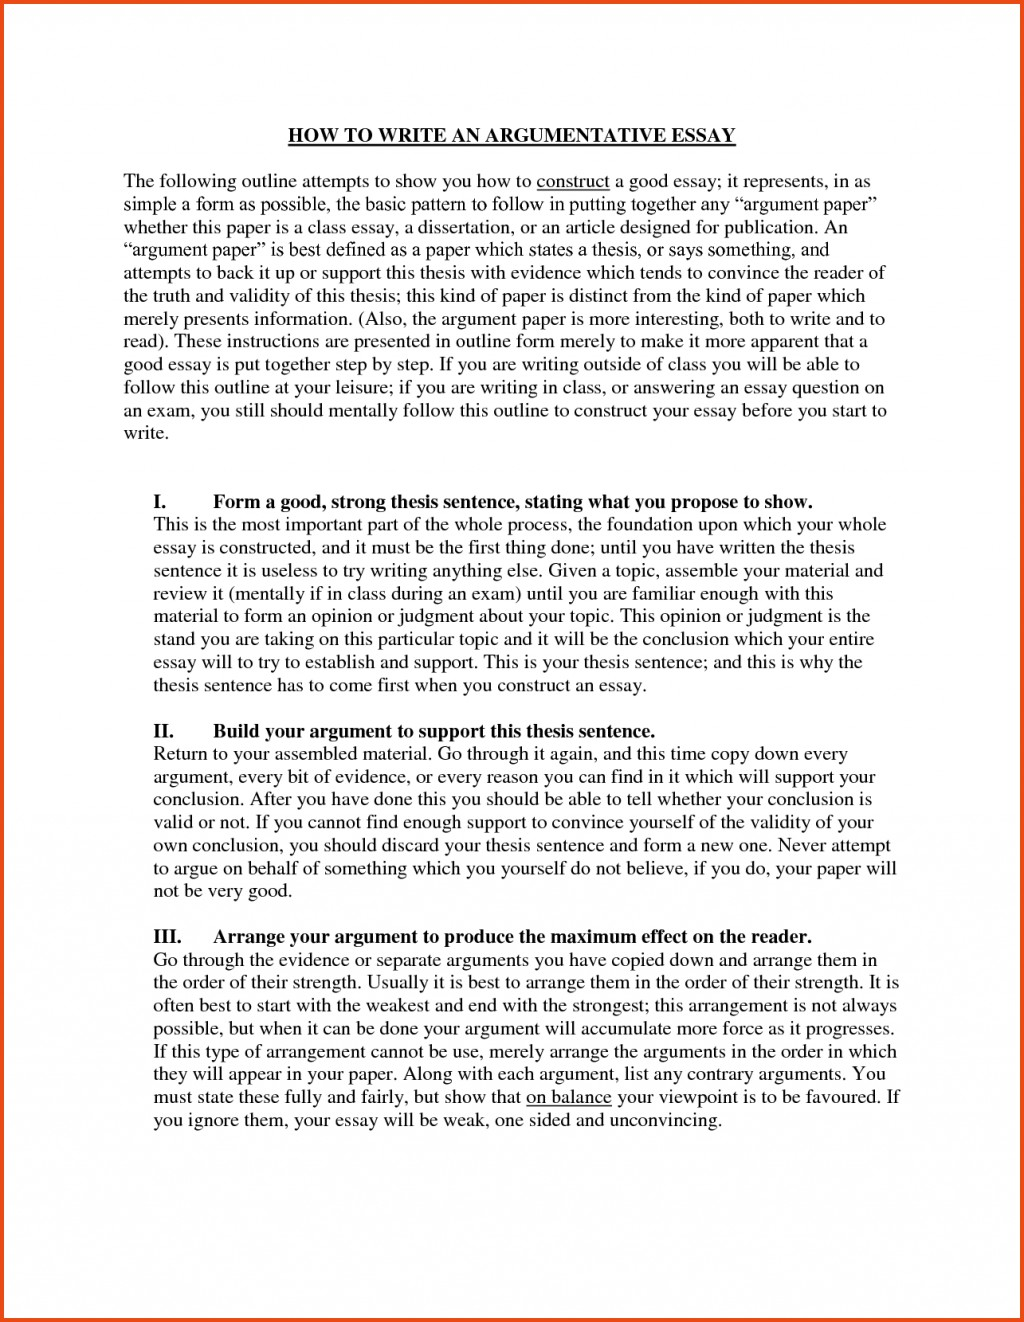 004 How To Start Good Essay Example Brilliant Ideas Of Ways An Aboutelf Dissertation Nice Photo Awesome A Sentence For College Introduction Large